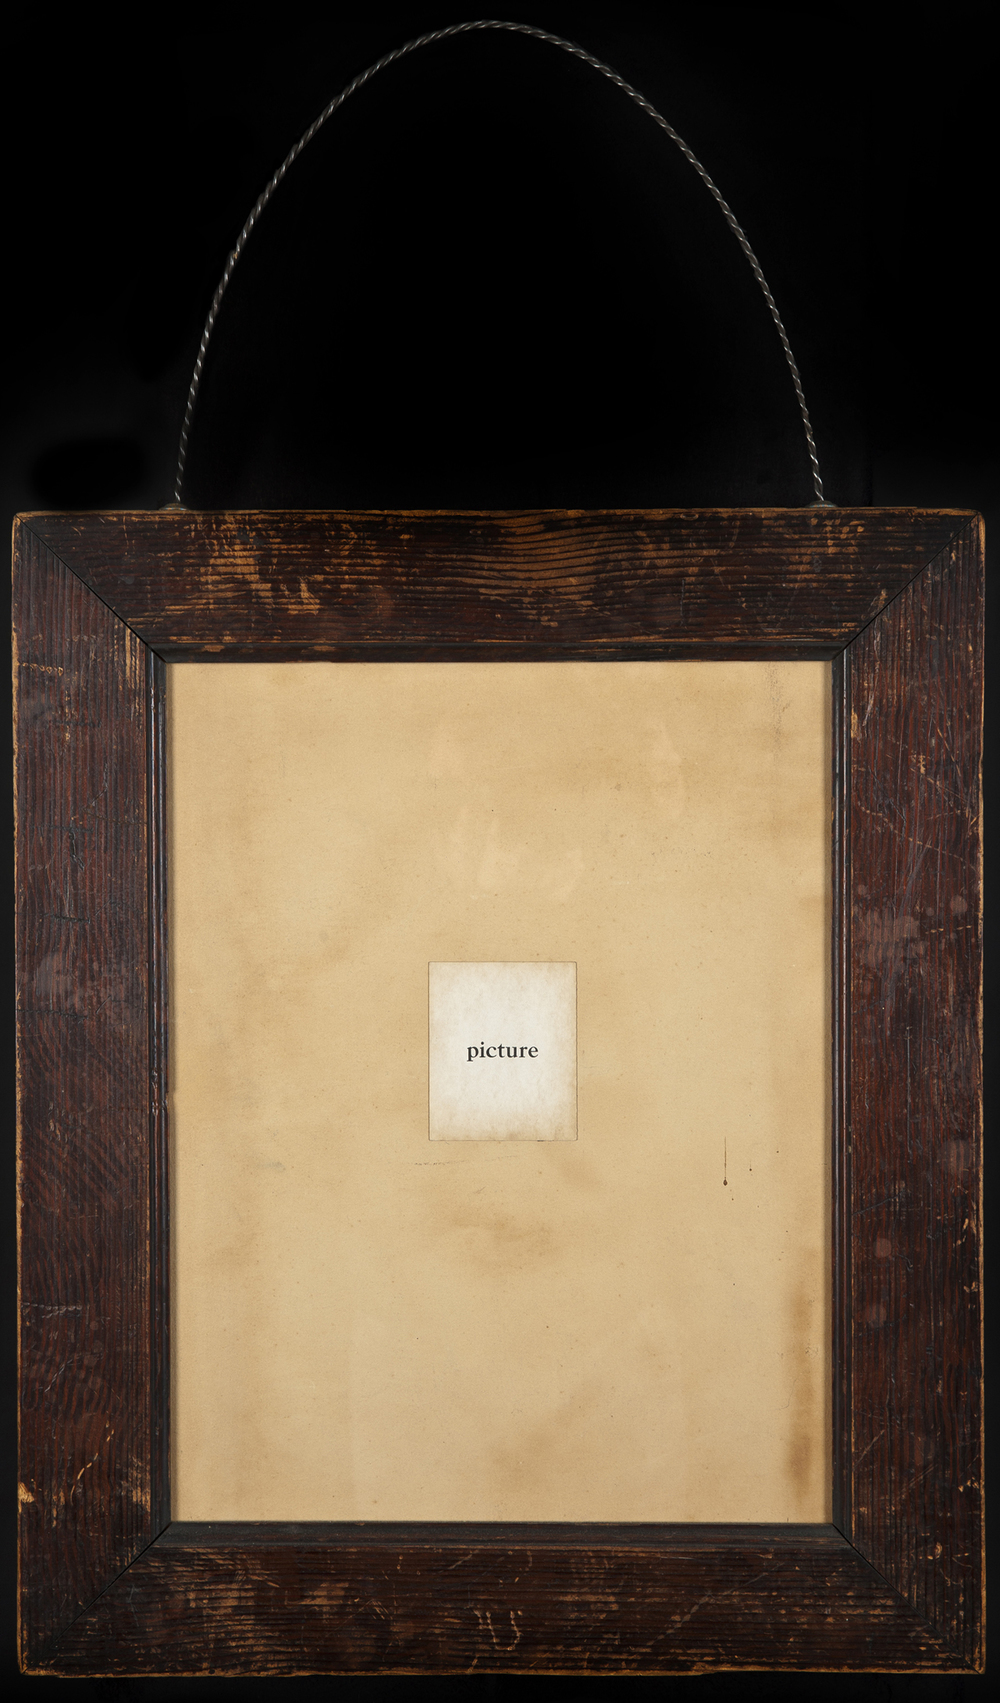 Picture, 2011, 32 x 18